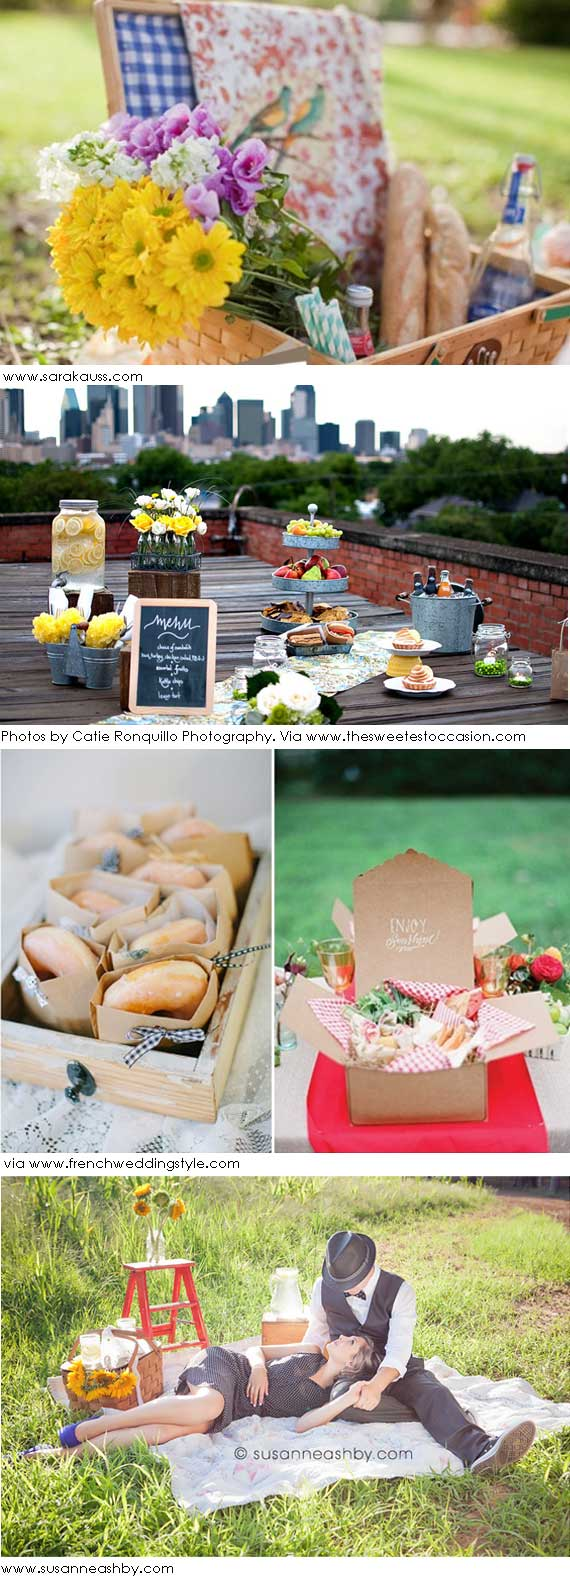 wedding romantic picnic